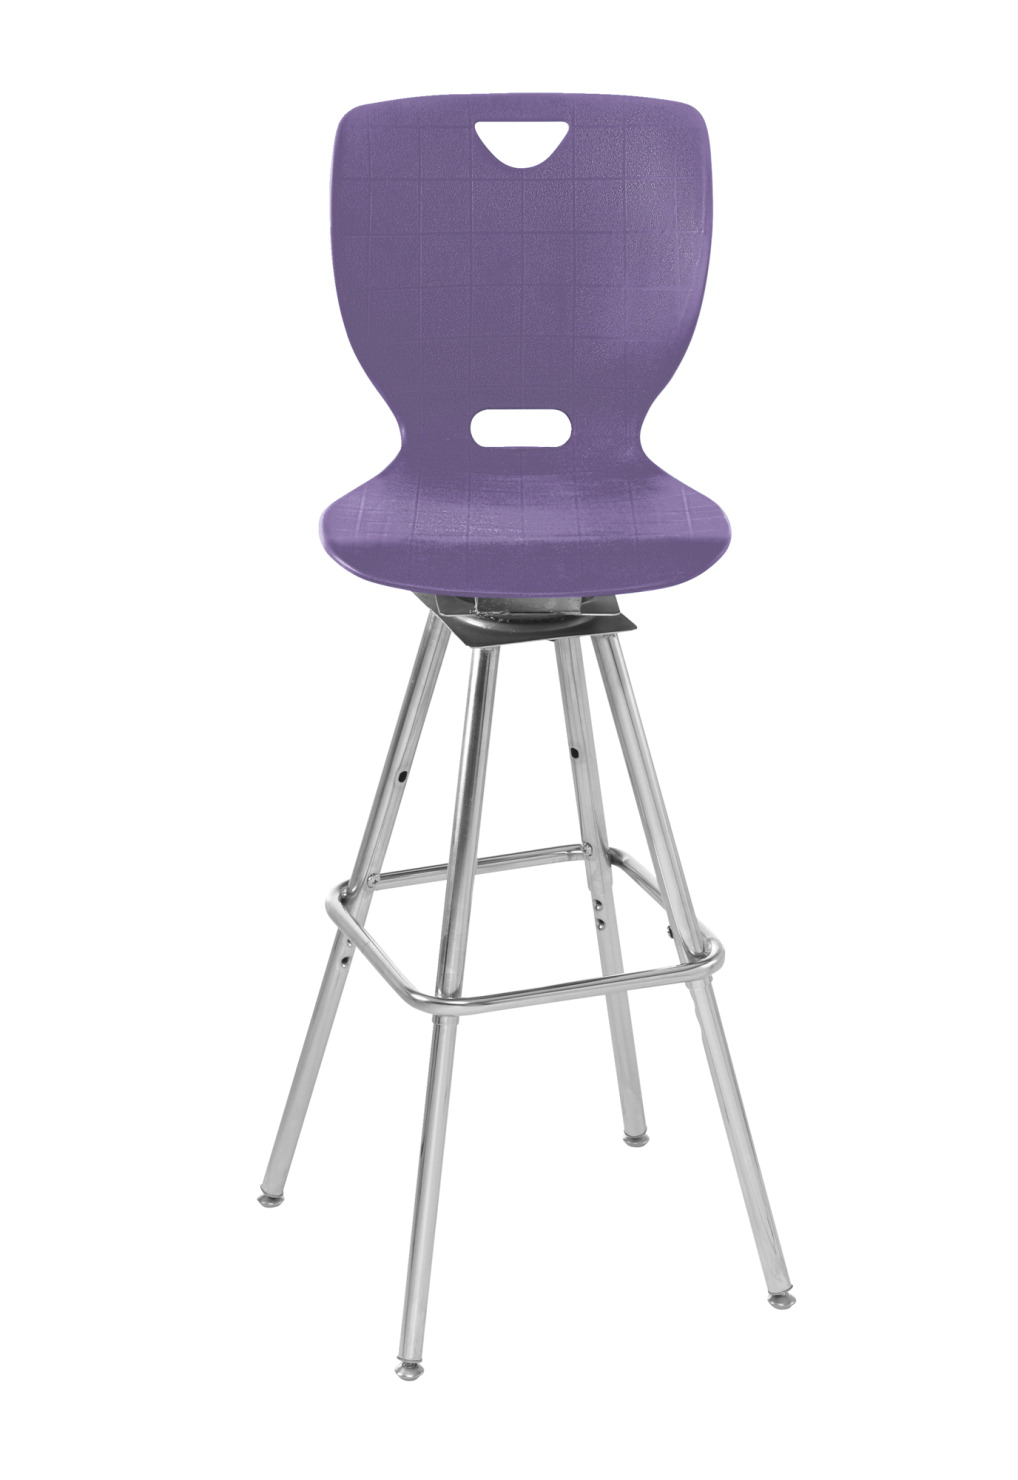 Classroom Select NeoClass Swivel Stool, 18 Inch A Shell Seat, Chrome Frame, Various Options